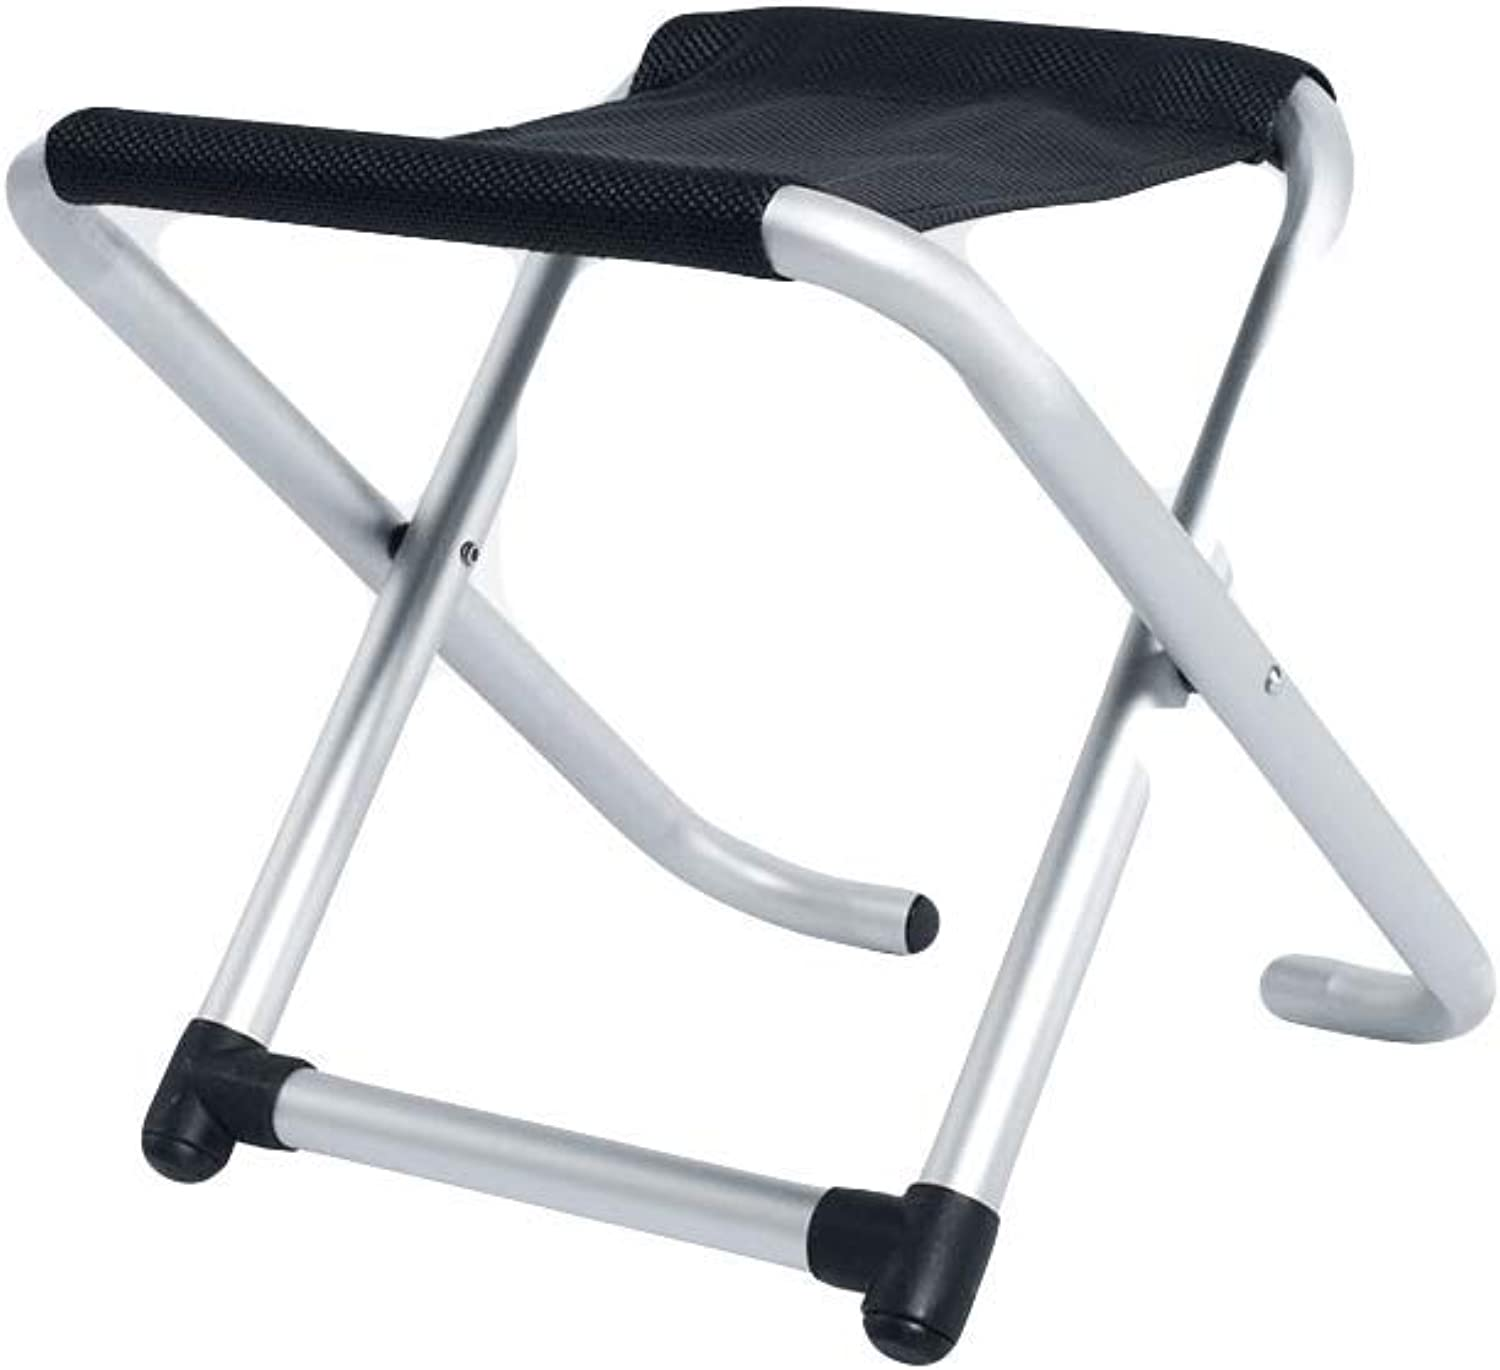 JXLBB Outdoor Folding Chair, Aluminum, Easy to Carry, Bearing 100kg